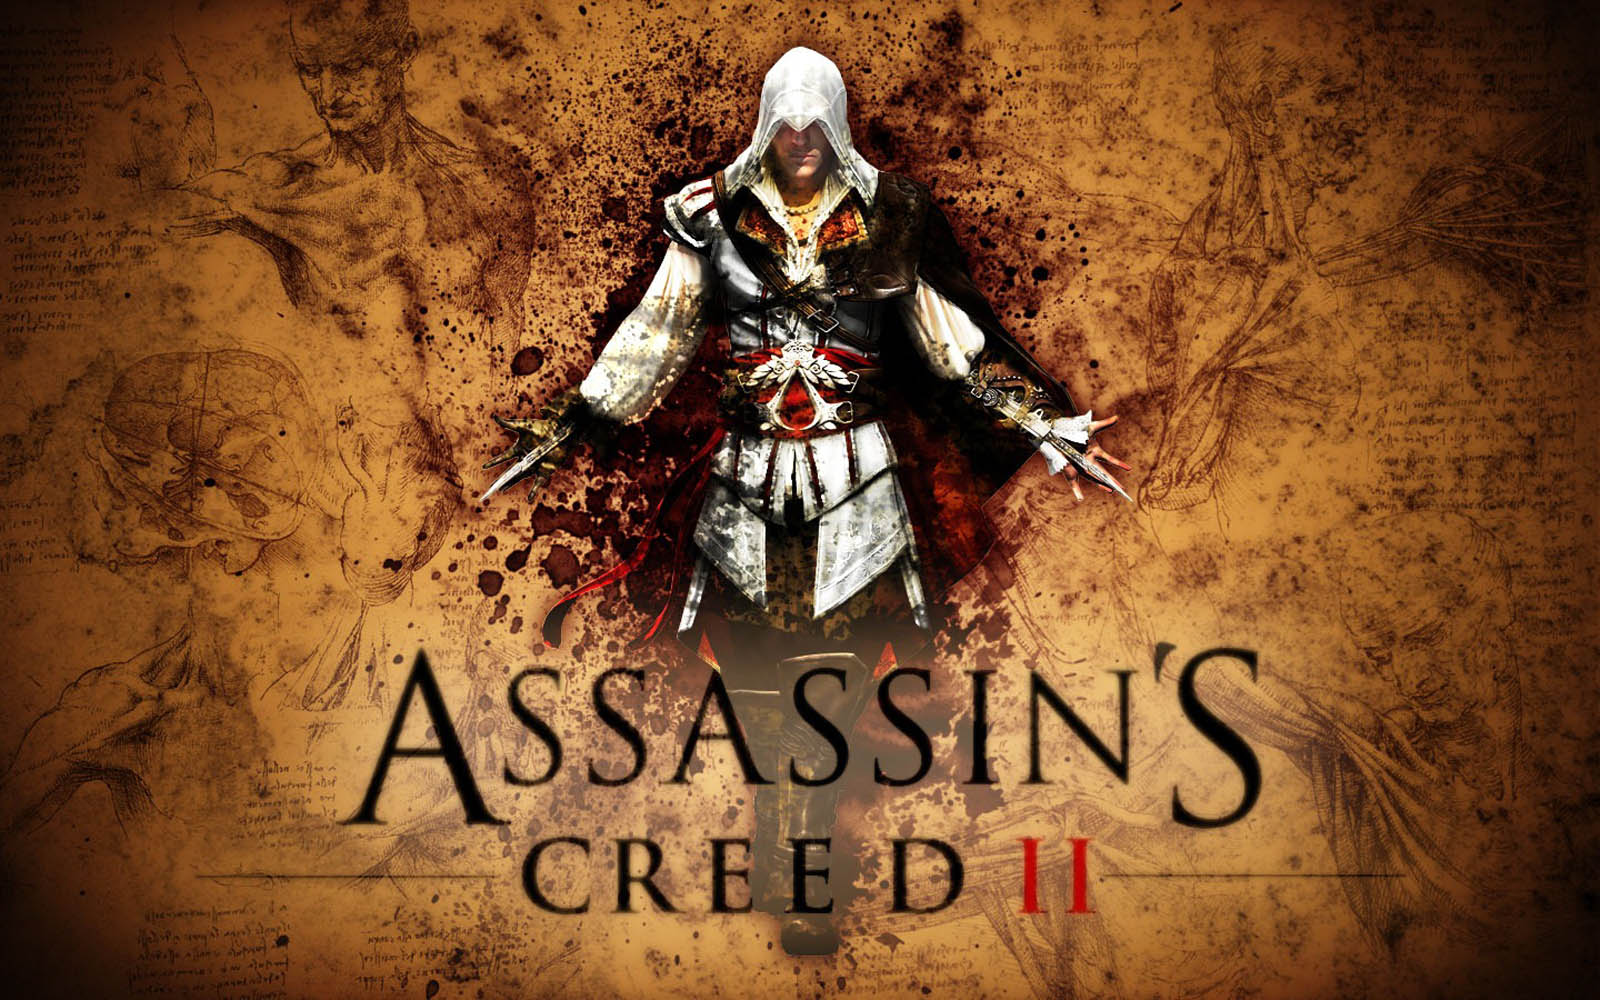 wallpapers: Assassin's Creed 2 Game Wallpapers